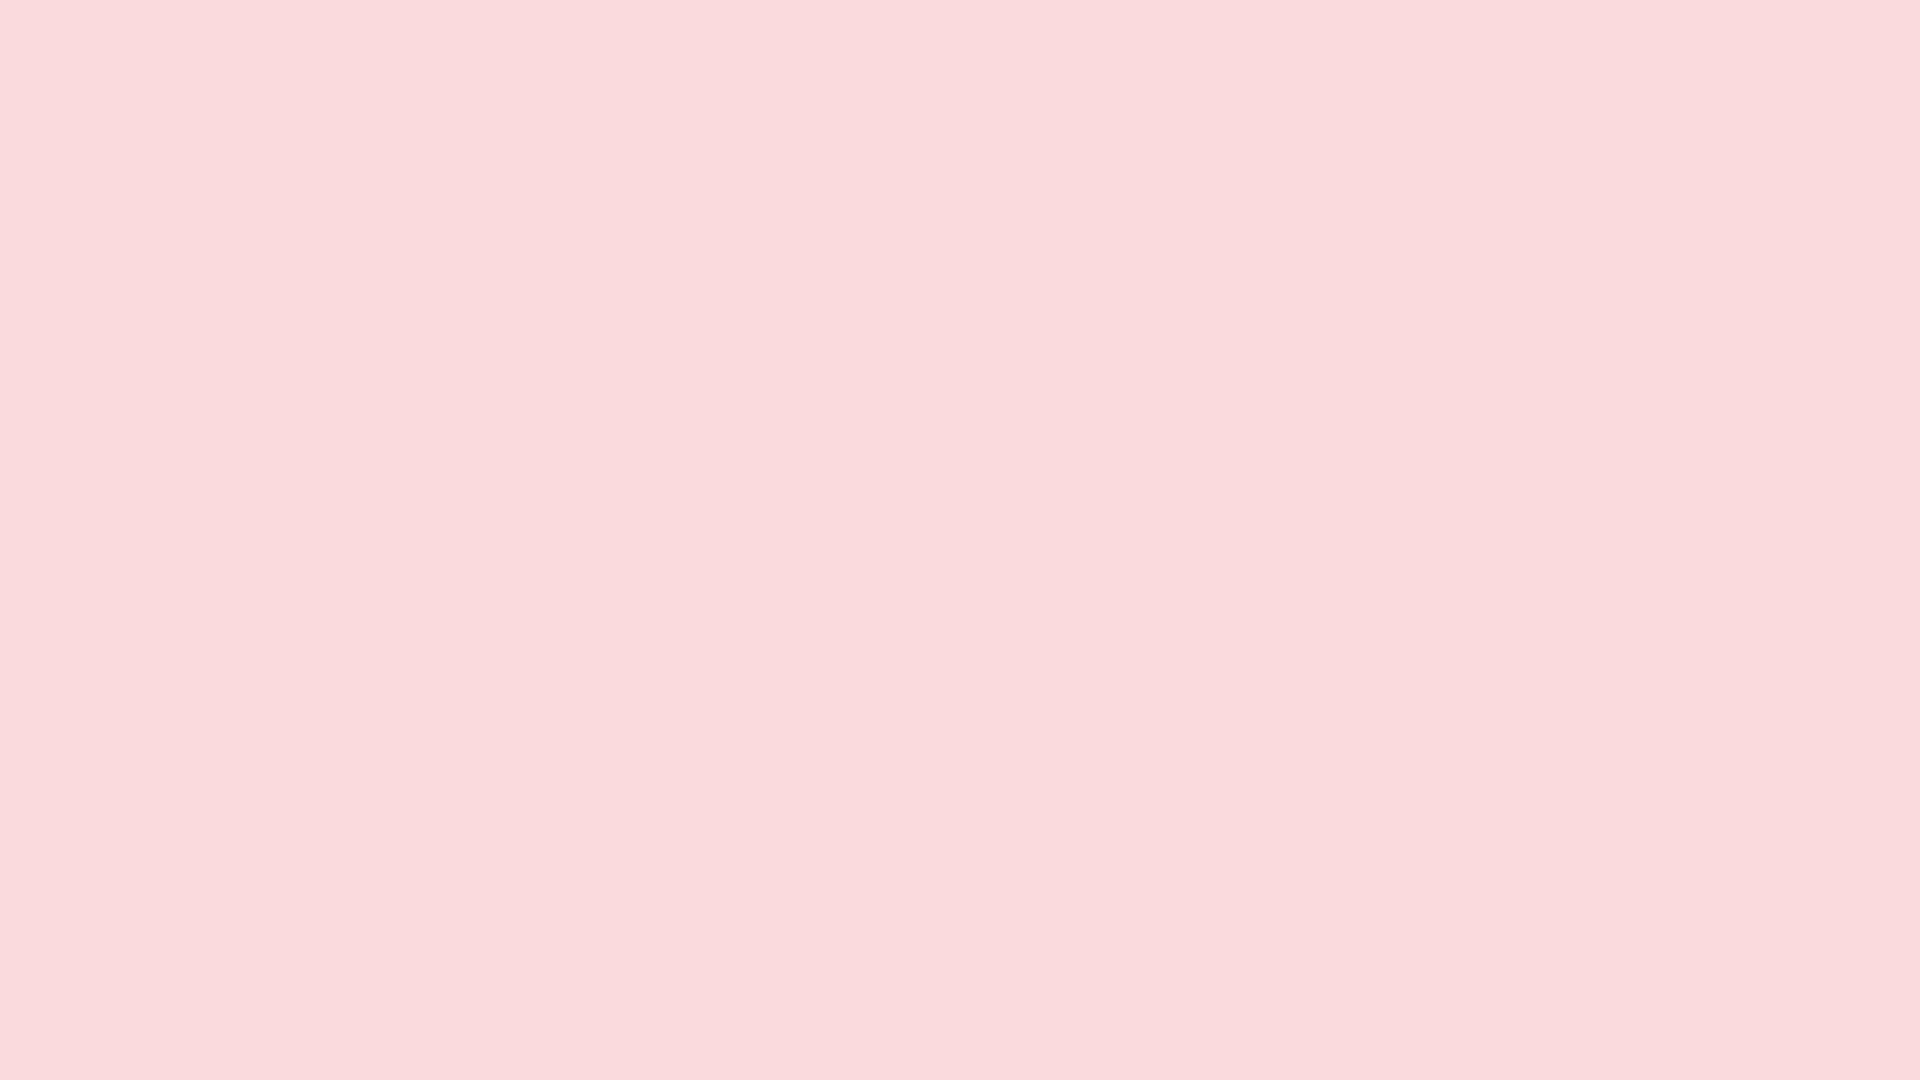 … Light Pink Color Background Light pink lor background free powerpoint  background